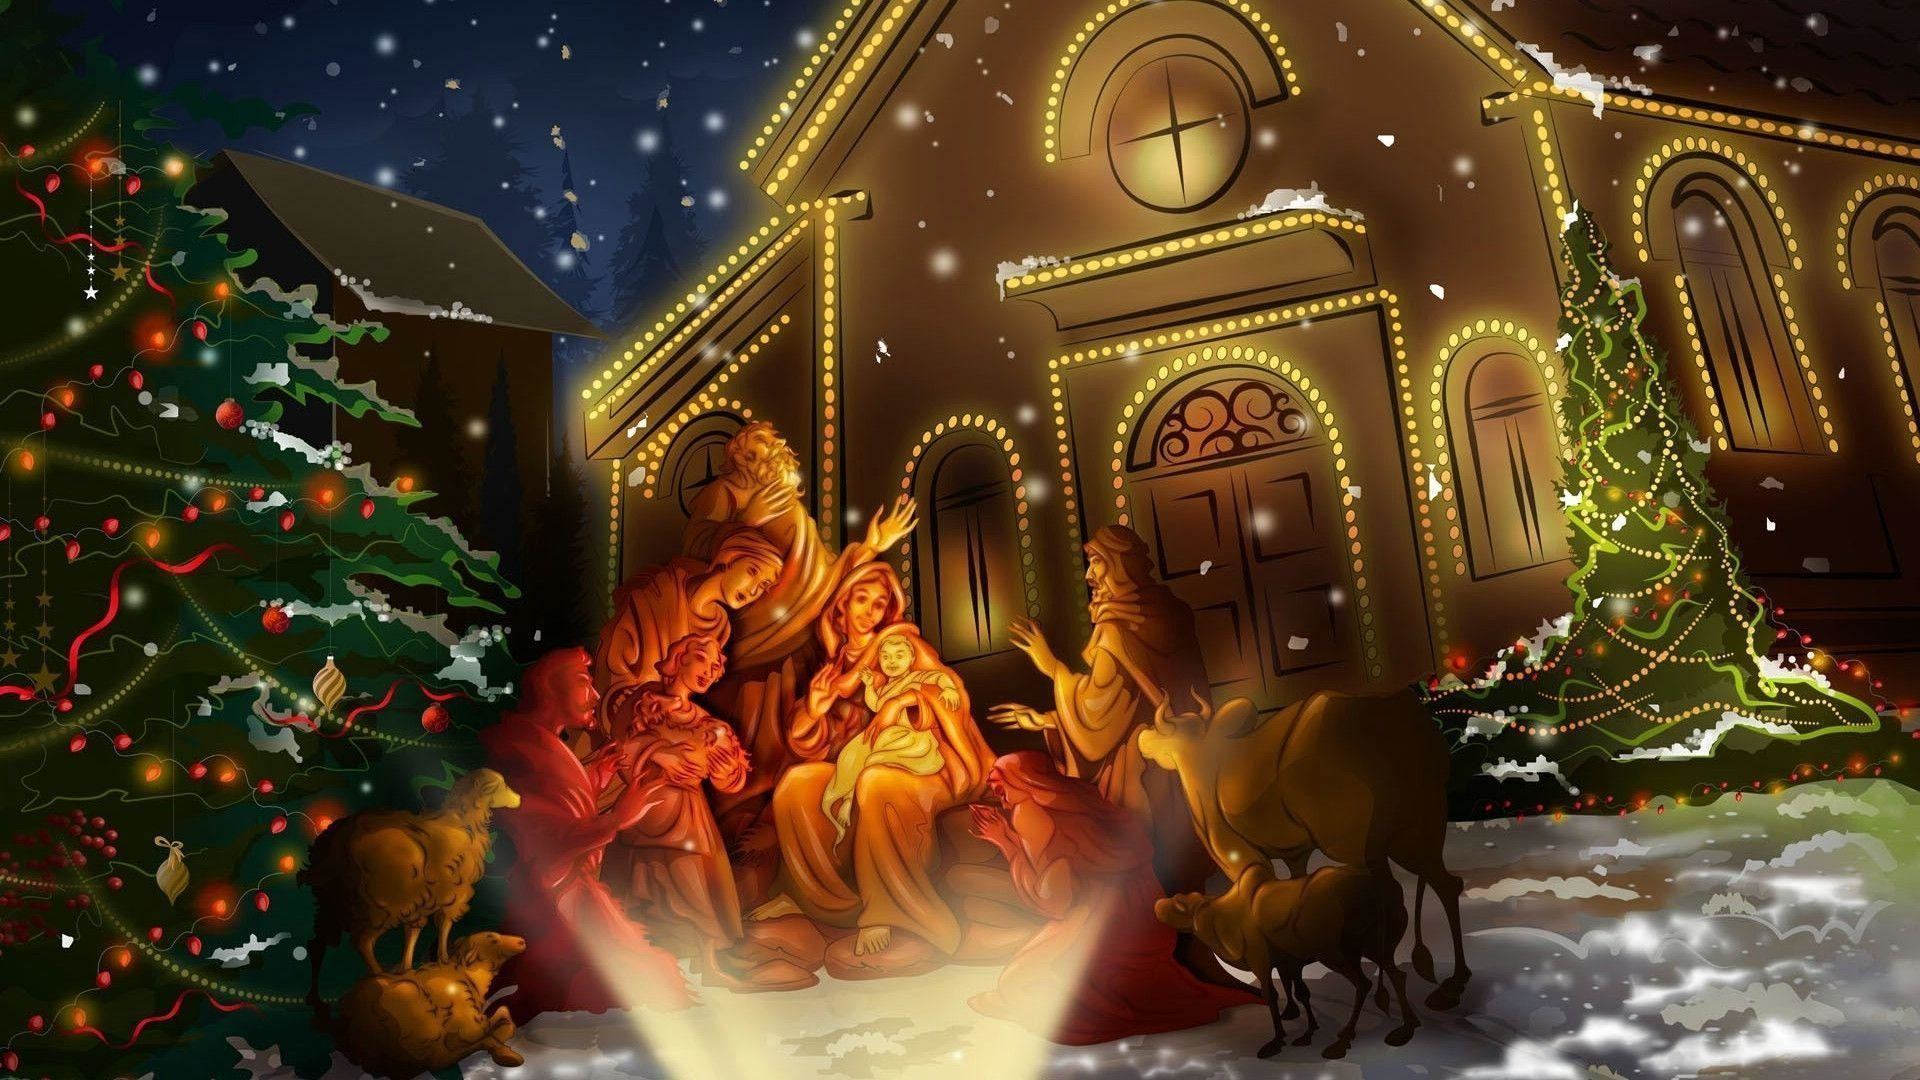 1920x1080 xmas stuff for christian christmas wallpaper - Christian Christmas Wallpaper